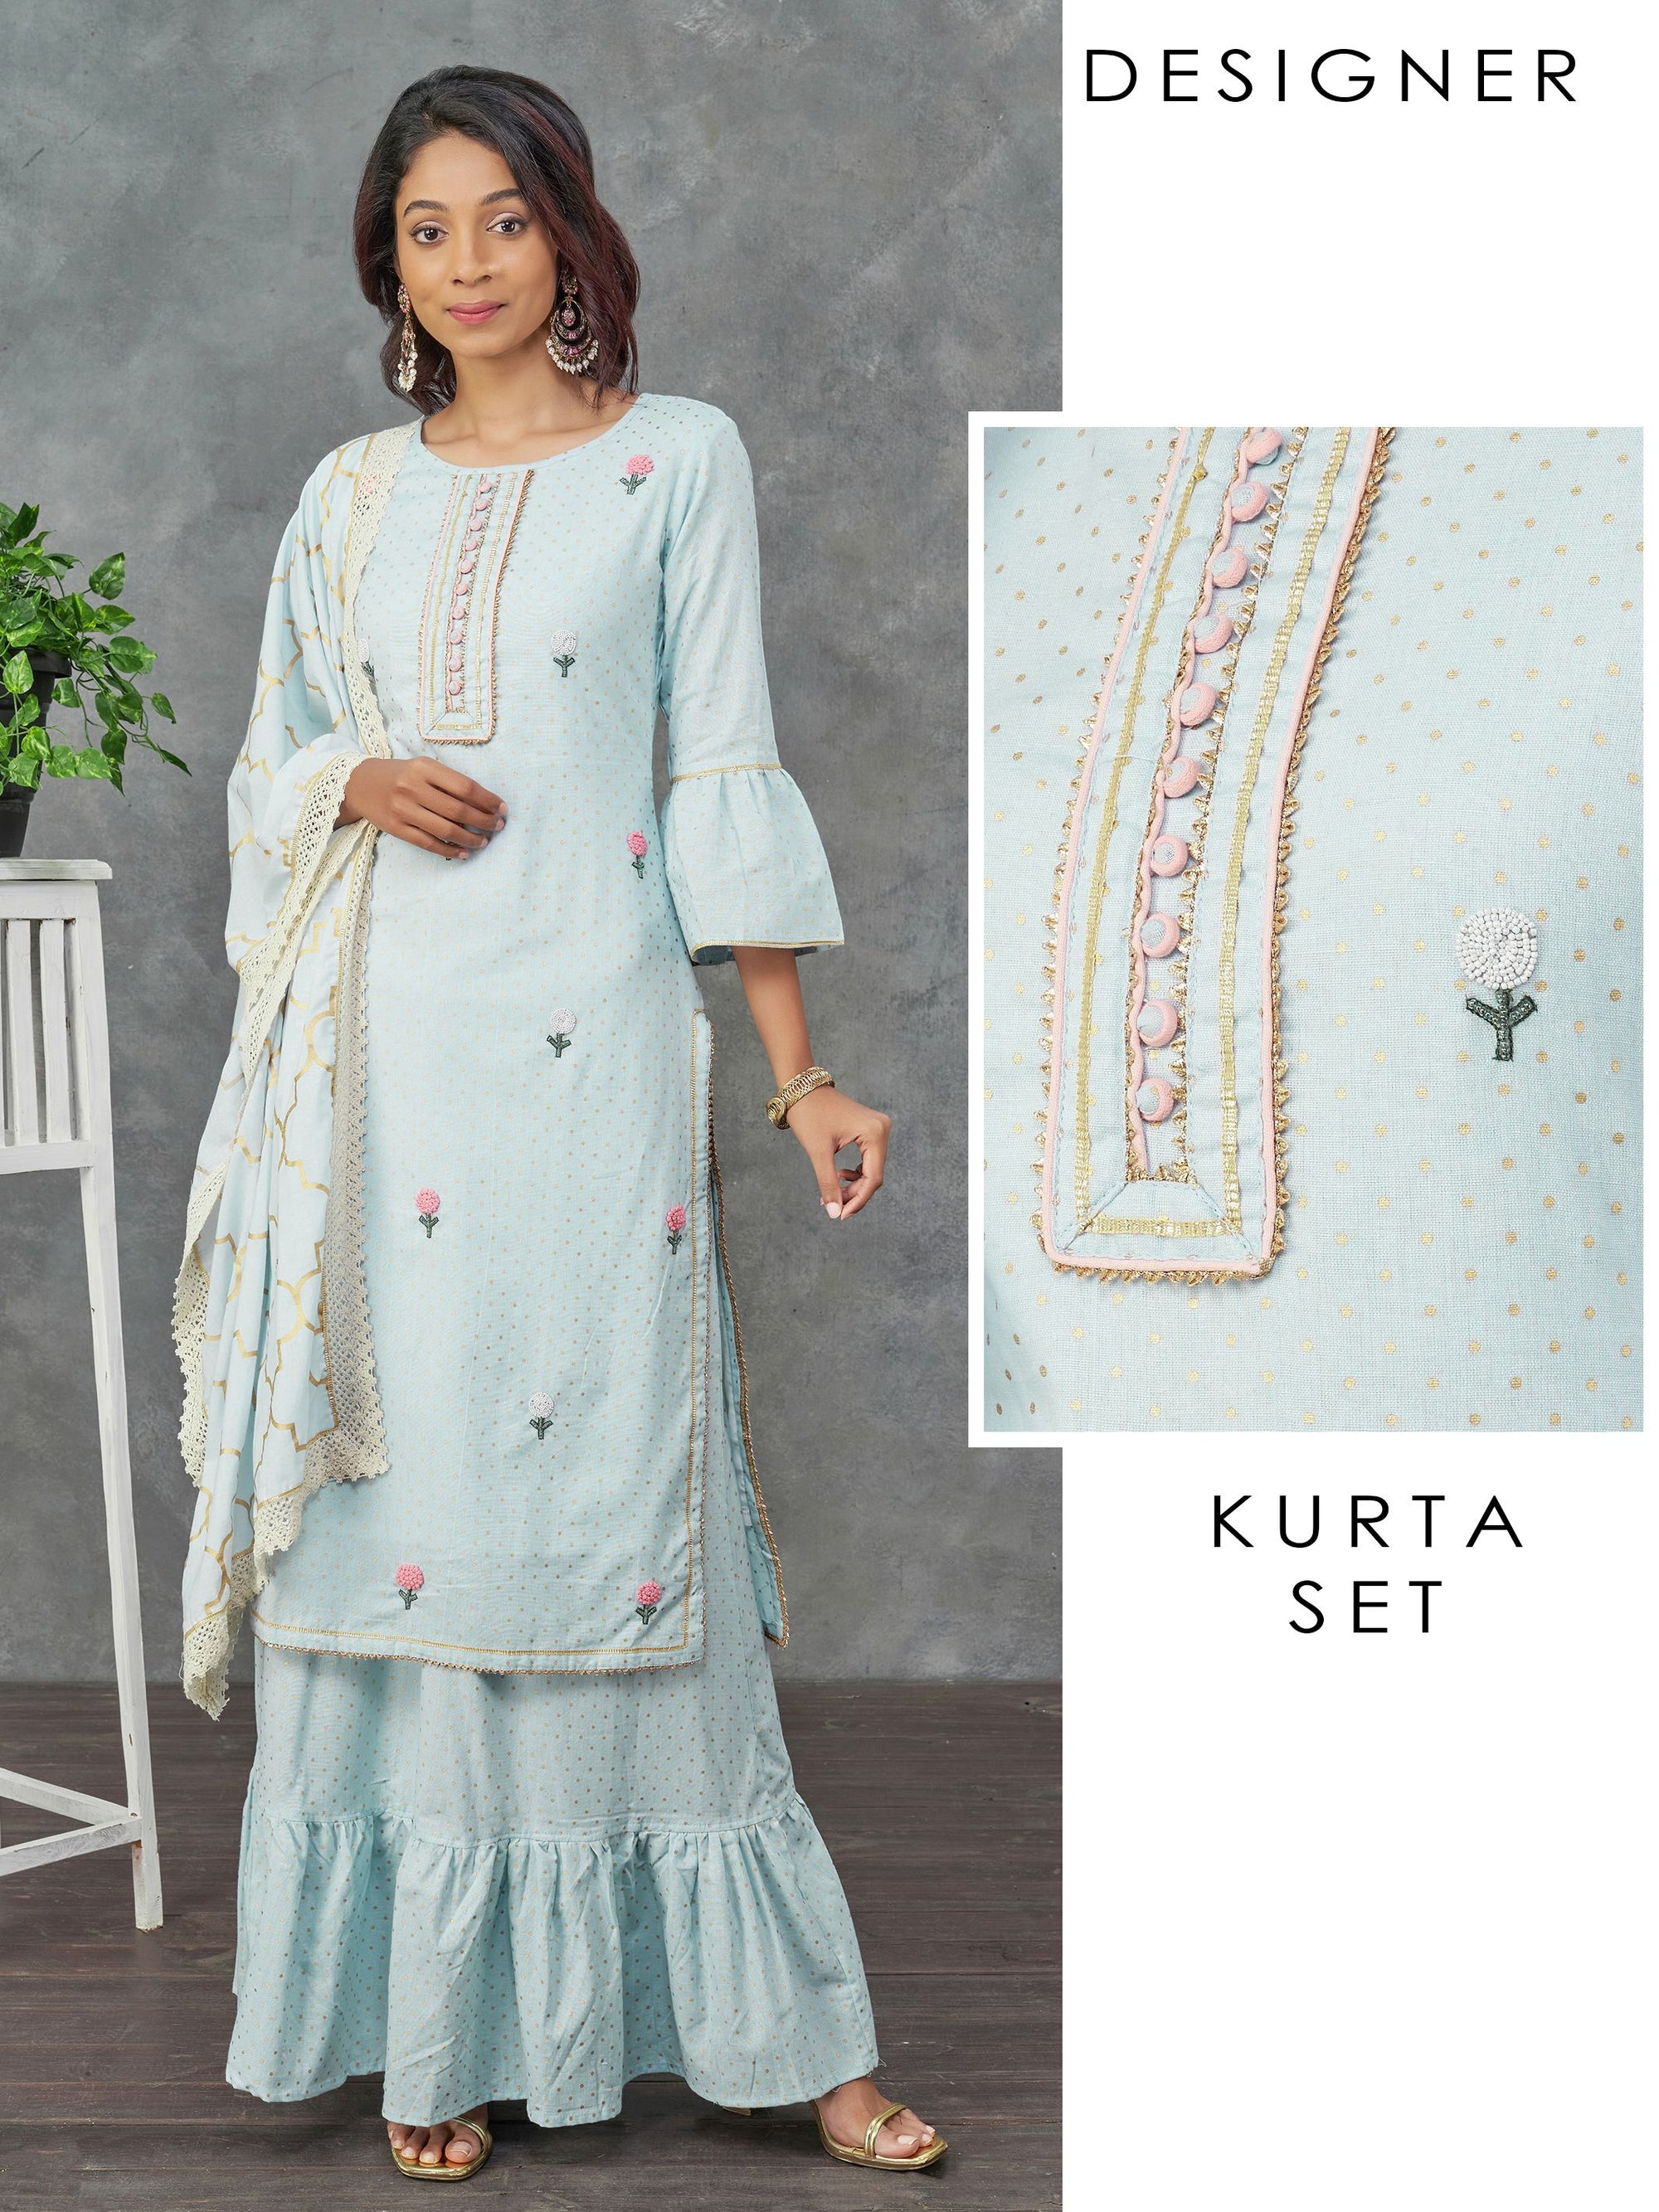 Glass Bead & Temple Gota Embellished Kurti, Skirt & Dupatta Set